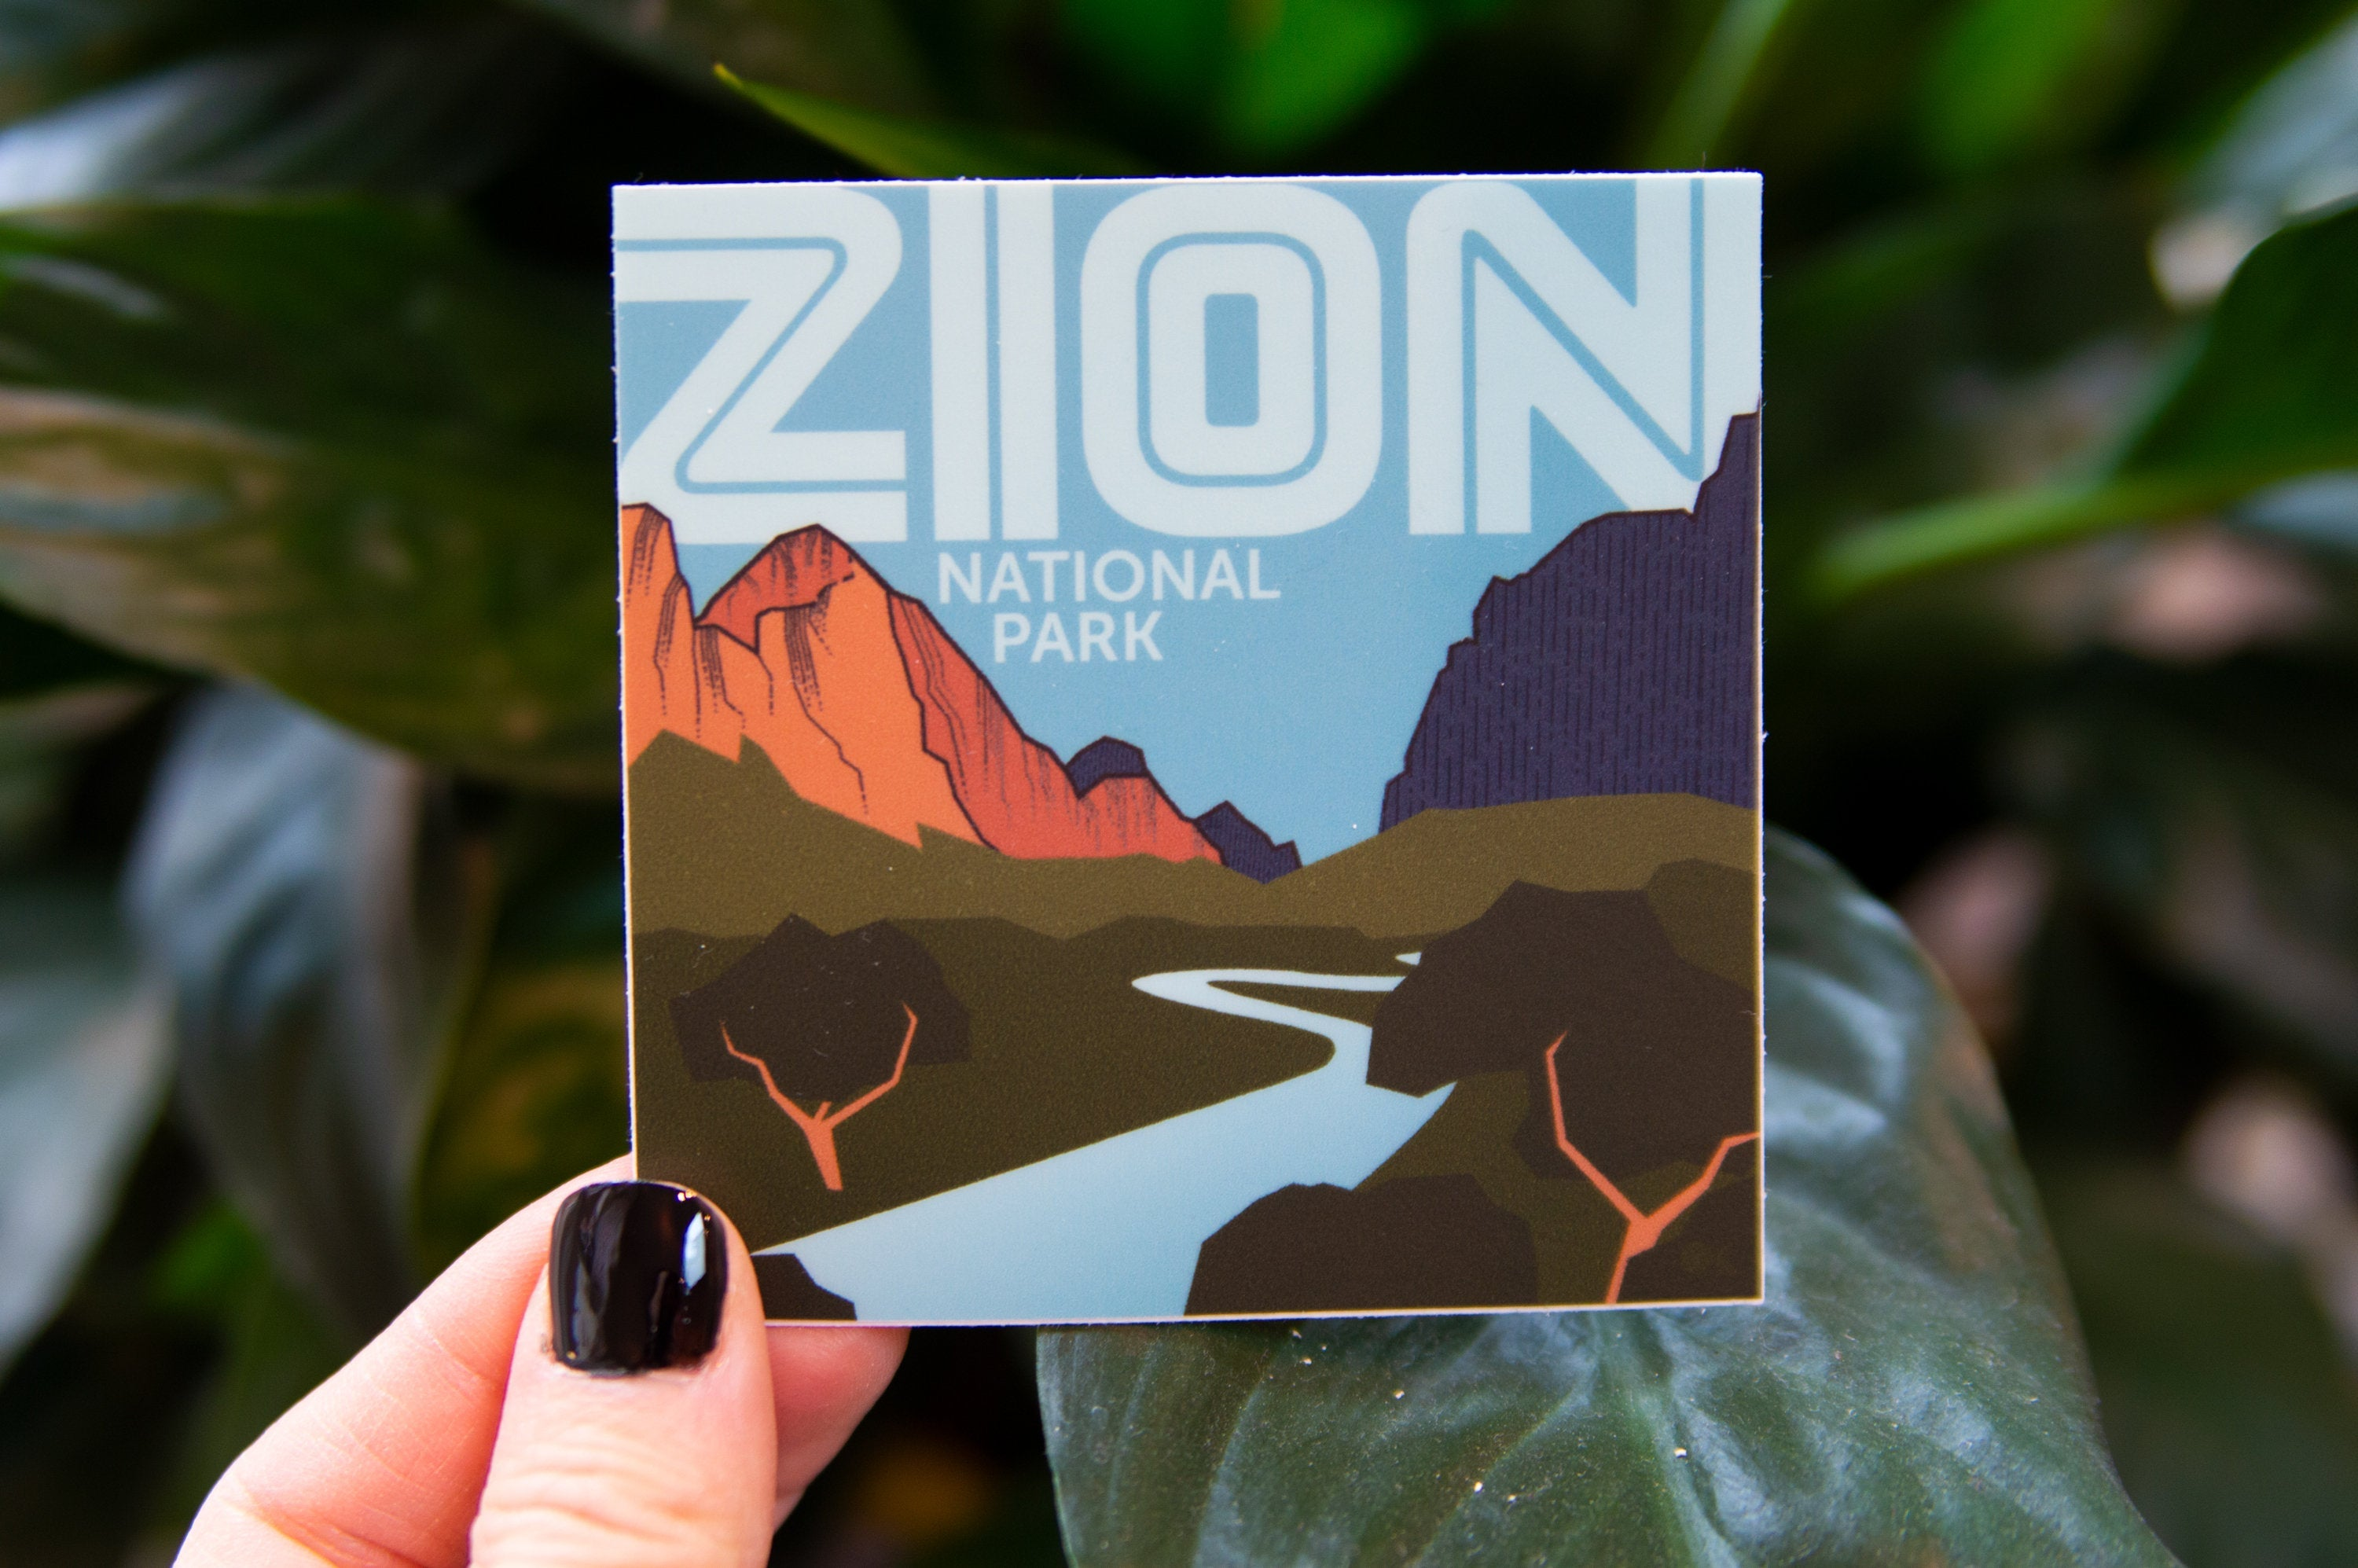 Zion National Park Sticker - Digitally hand drawn - Vinyl Stickers, travel, nature enthusiast, cross country, backpacking, outdoors